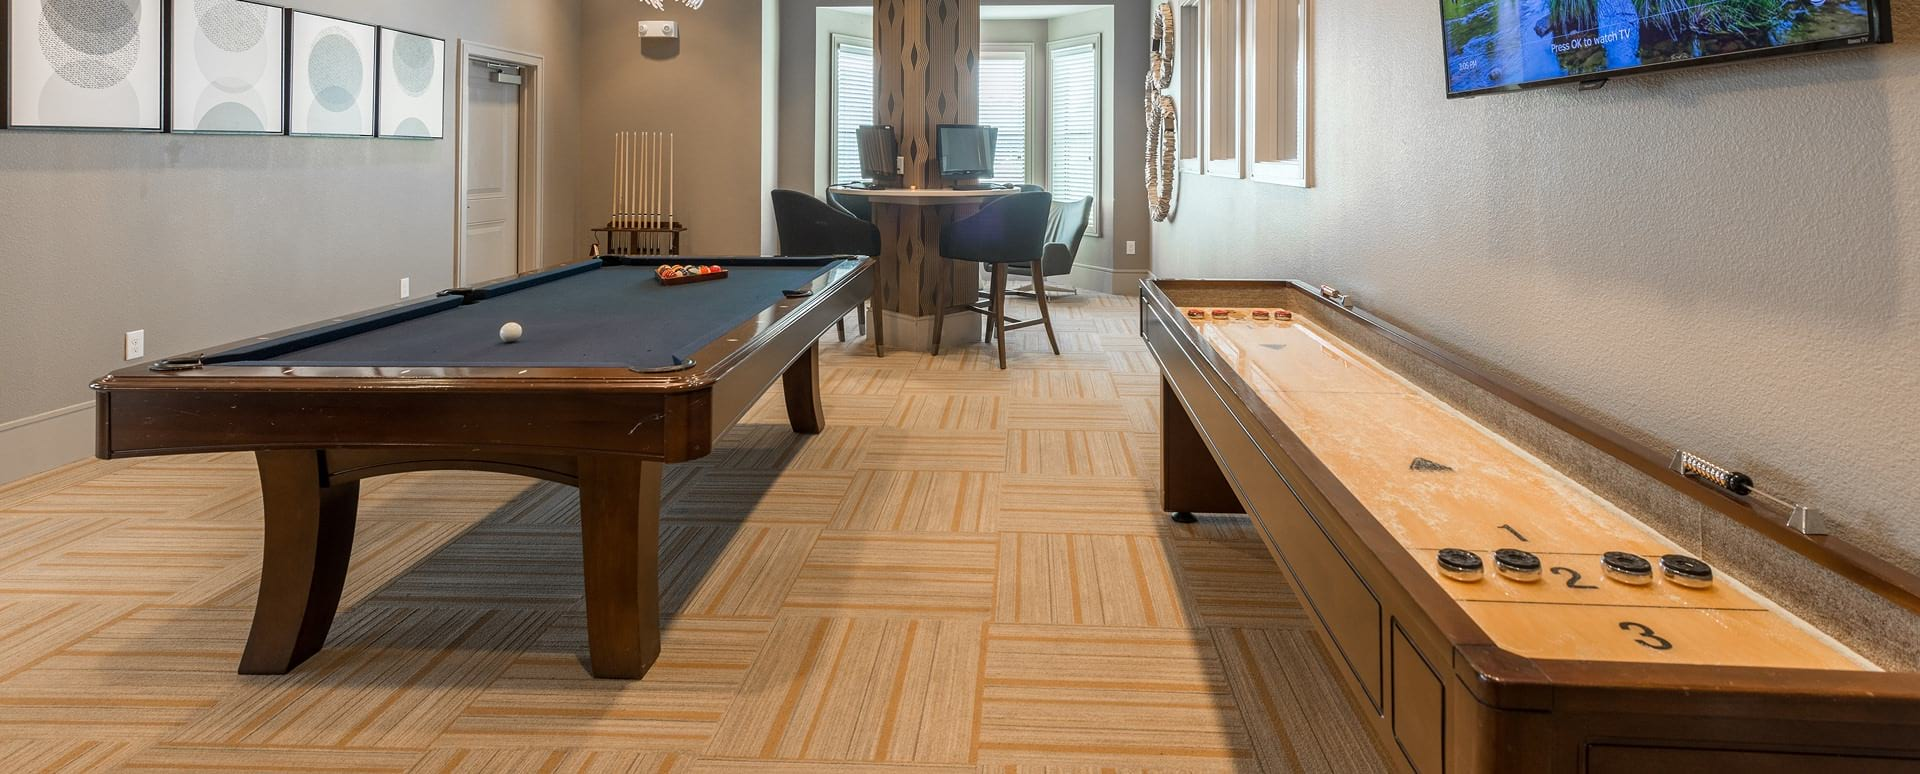 game room with billiards and skee tables